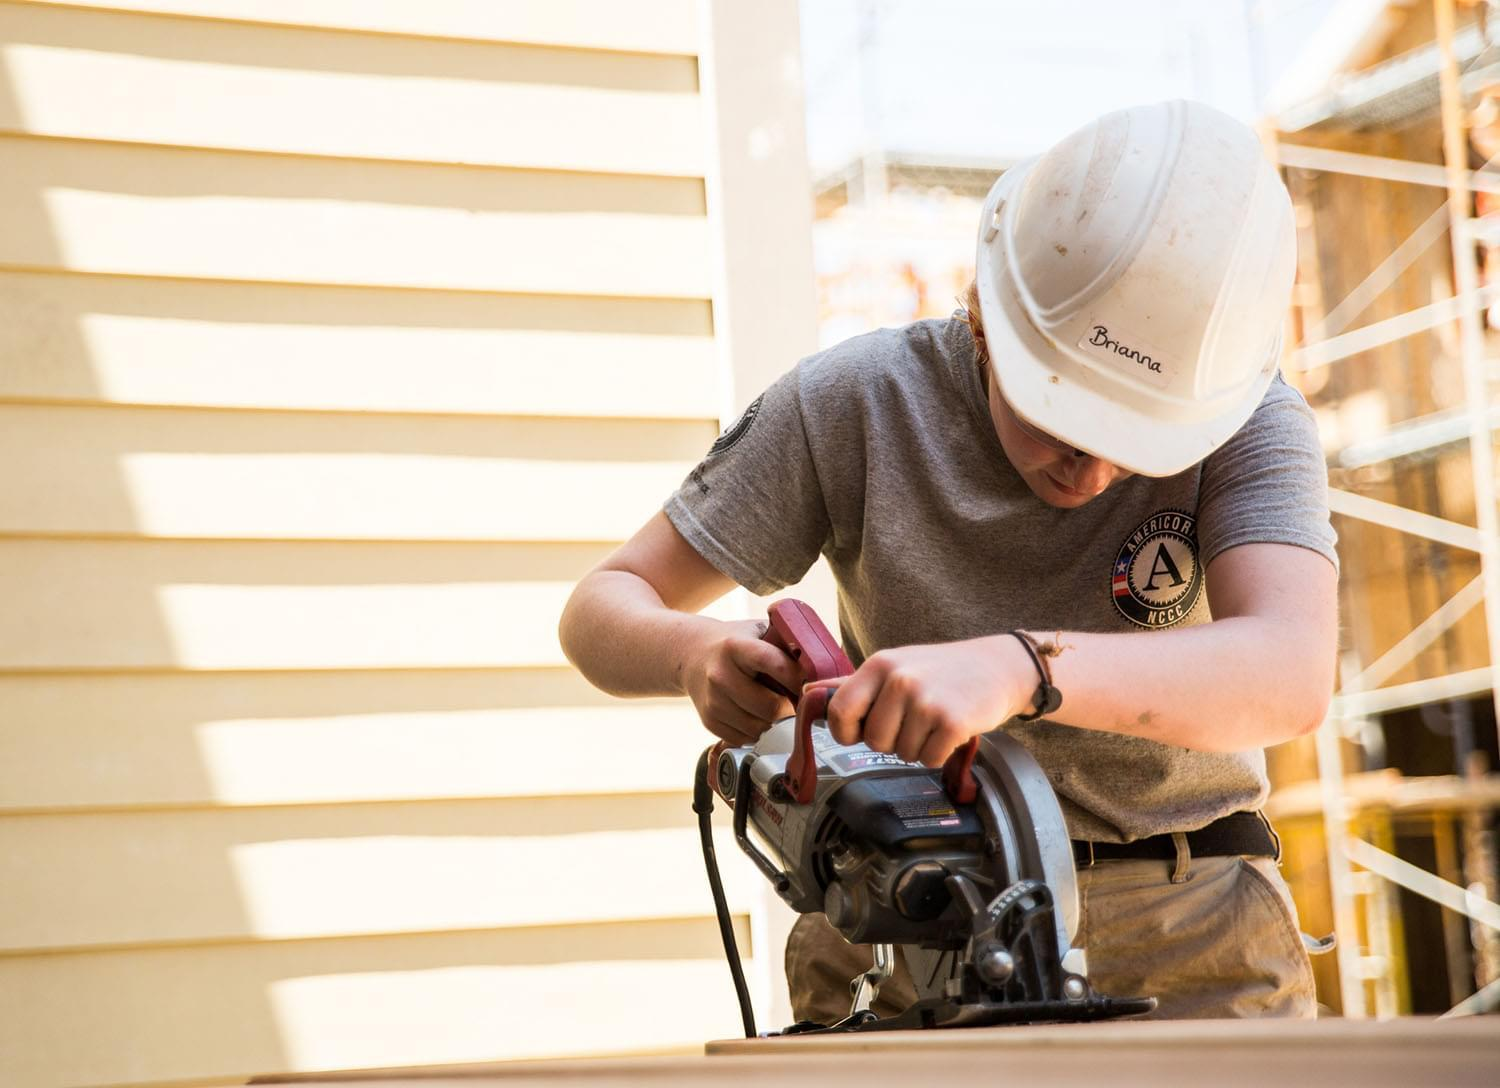 Woman wearing a hard hat using an electric sander